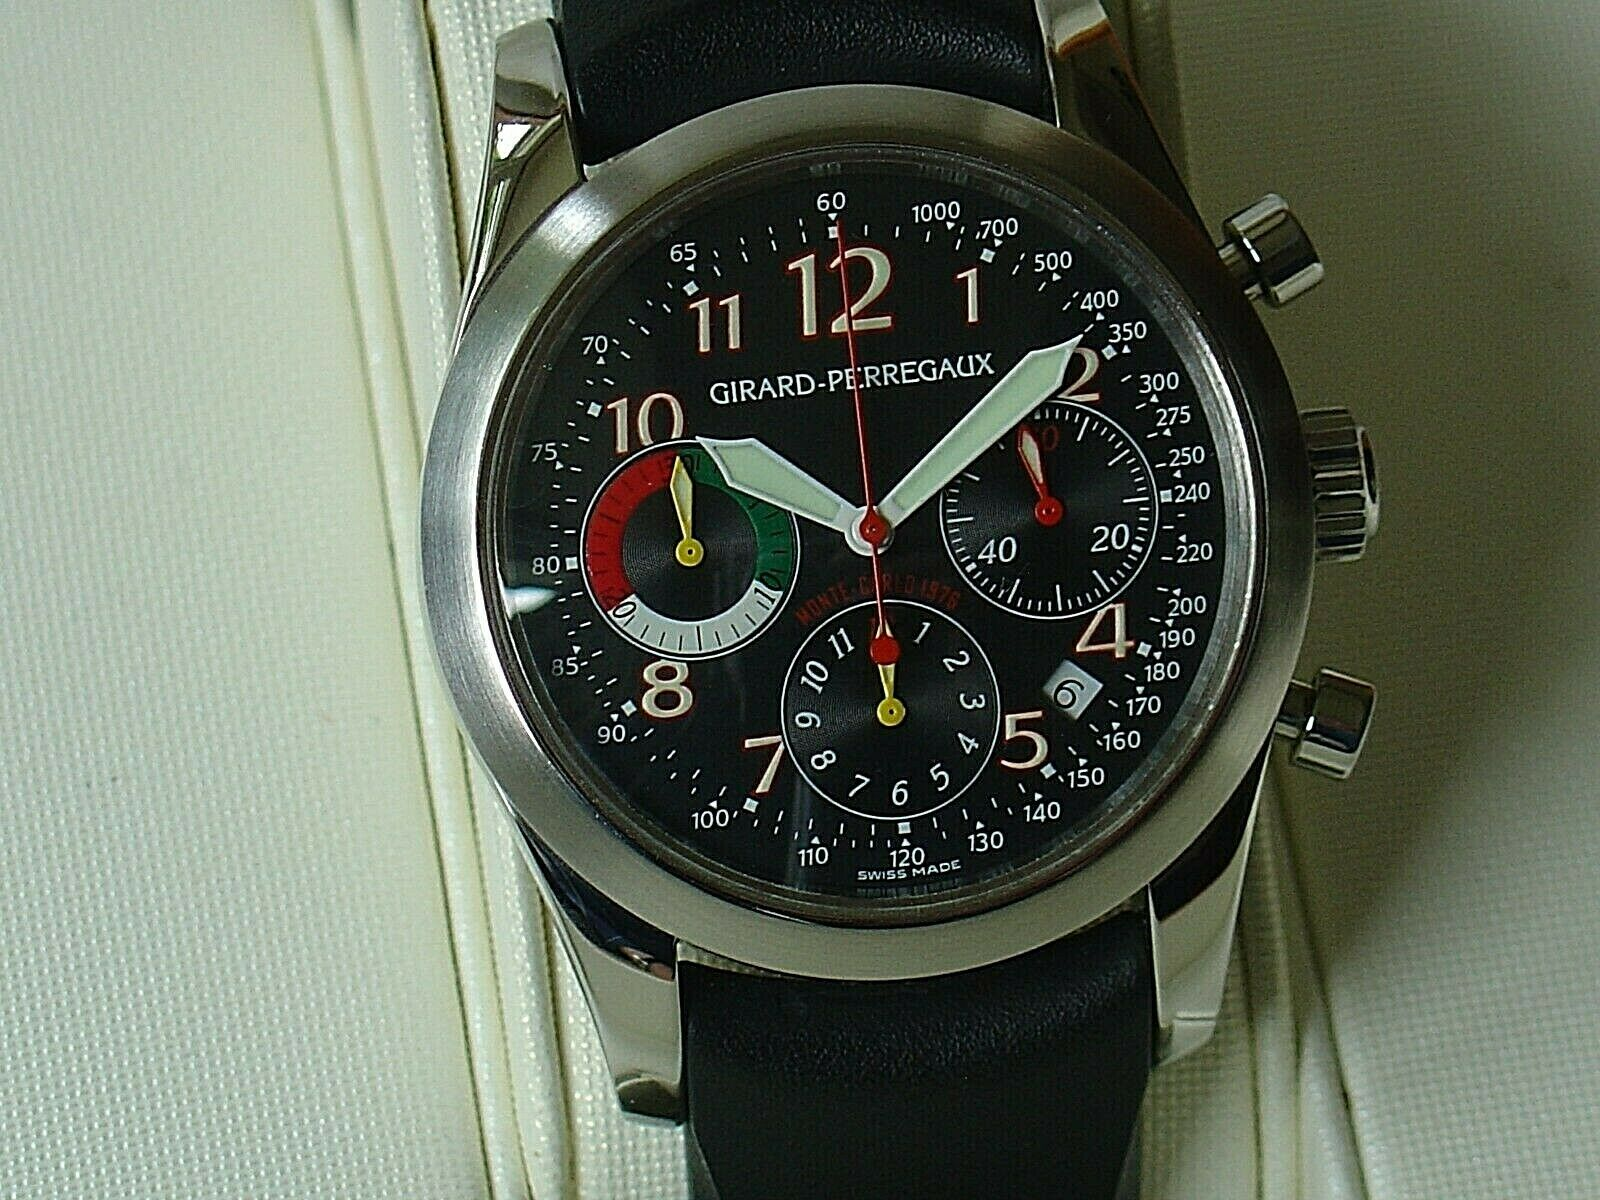 GIRARD PERREGAUX 1976 Monte Carlo S/S chronograph.As new condition.146/1000 - watch picture 1